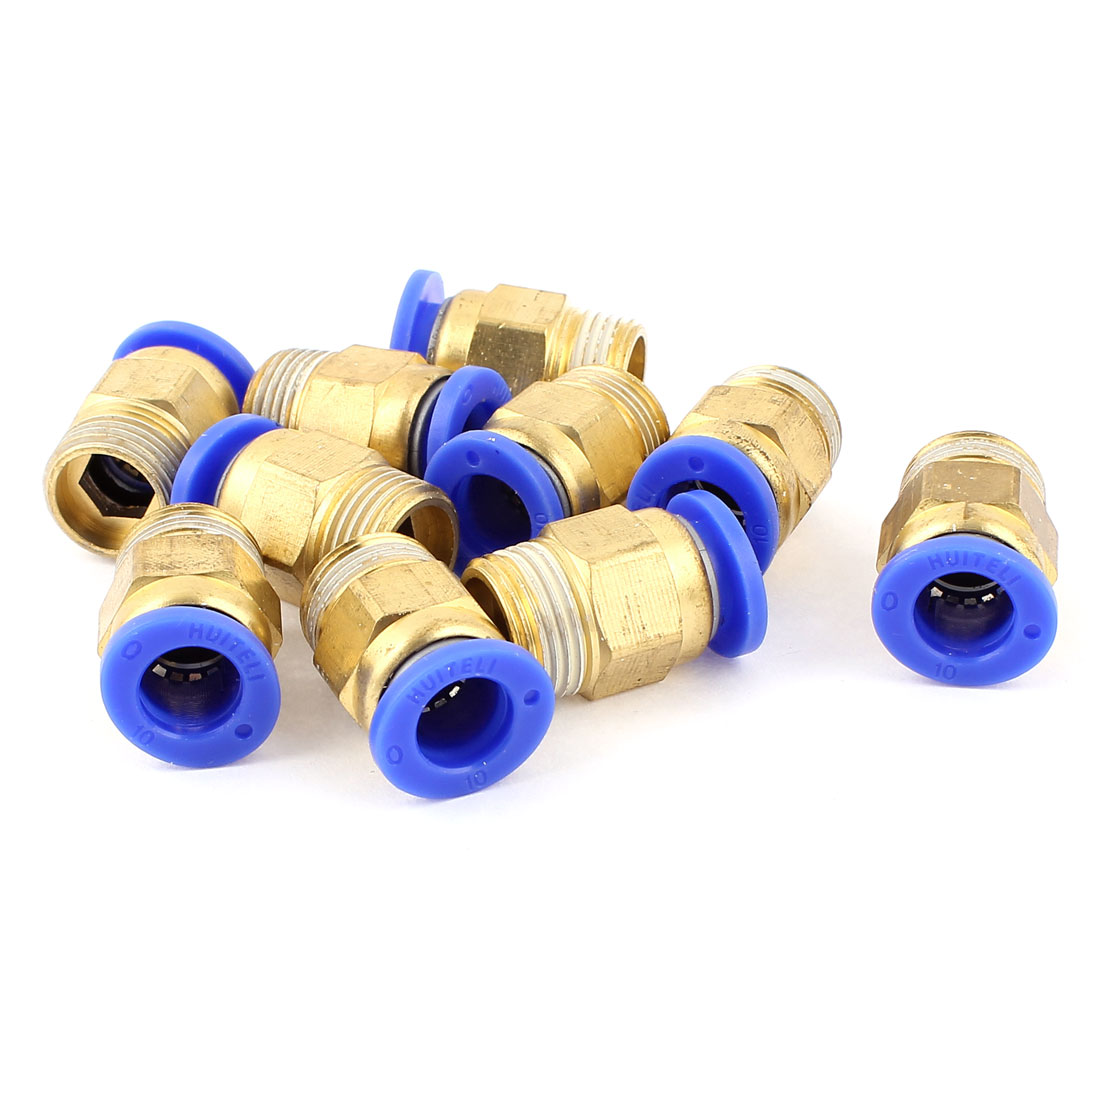 Air Line Hose 3/8BSP Male Thread 10mm Tube Quick Release Coupler Fittings 10pcs